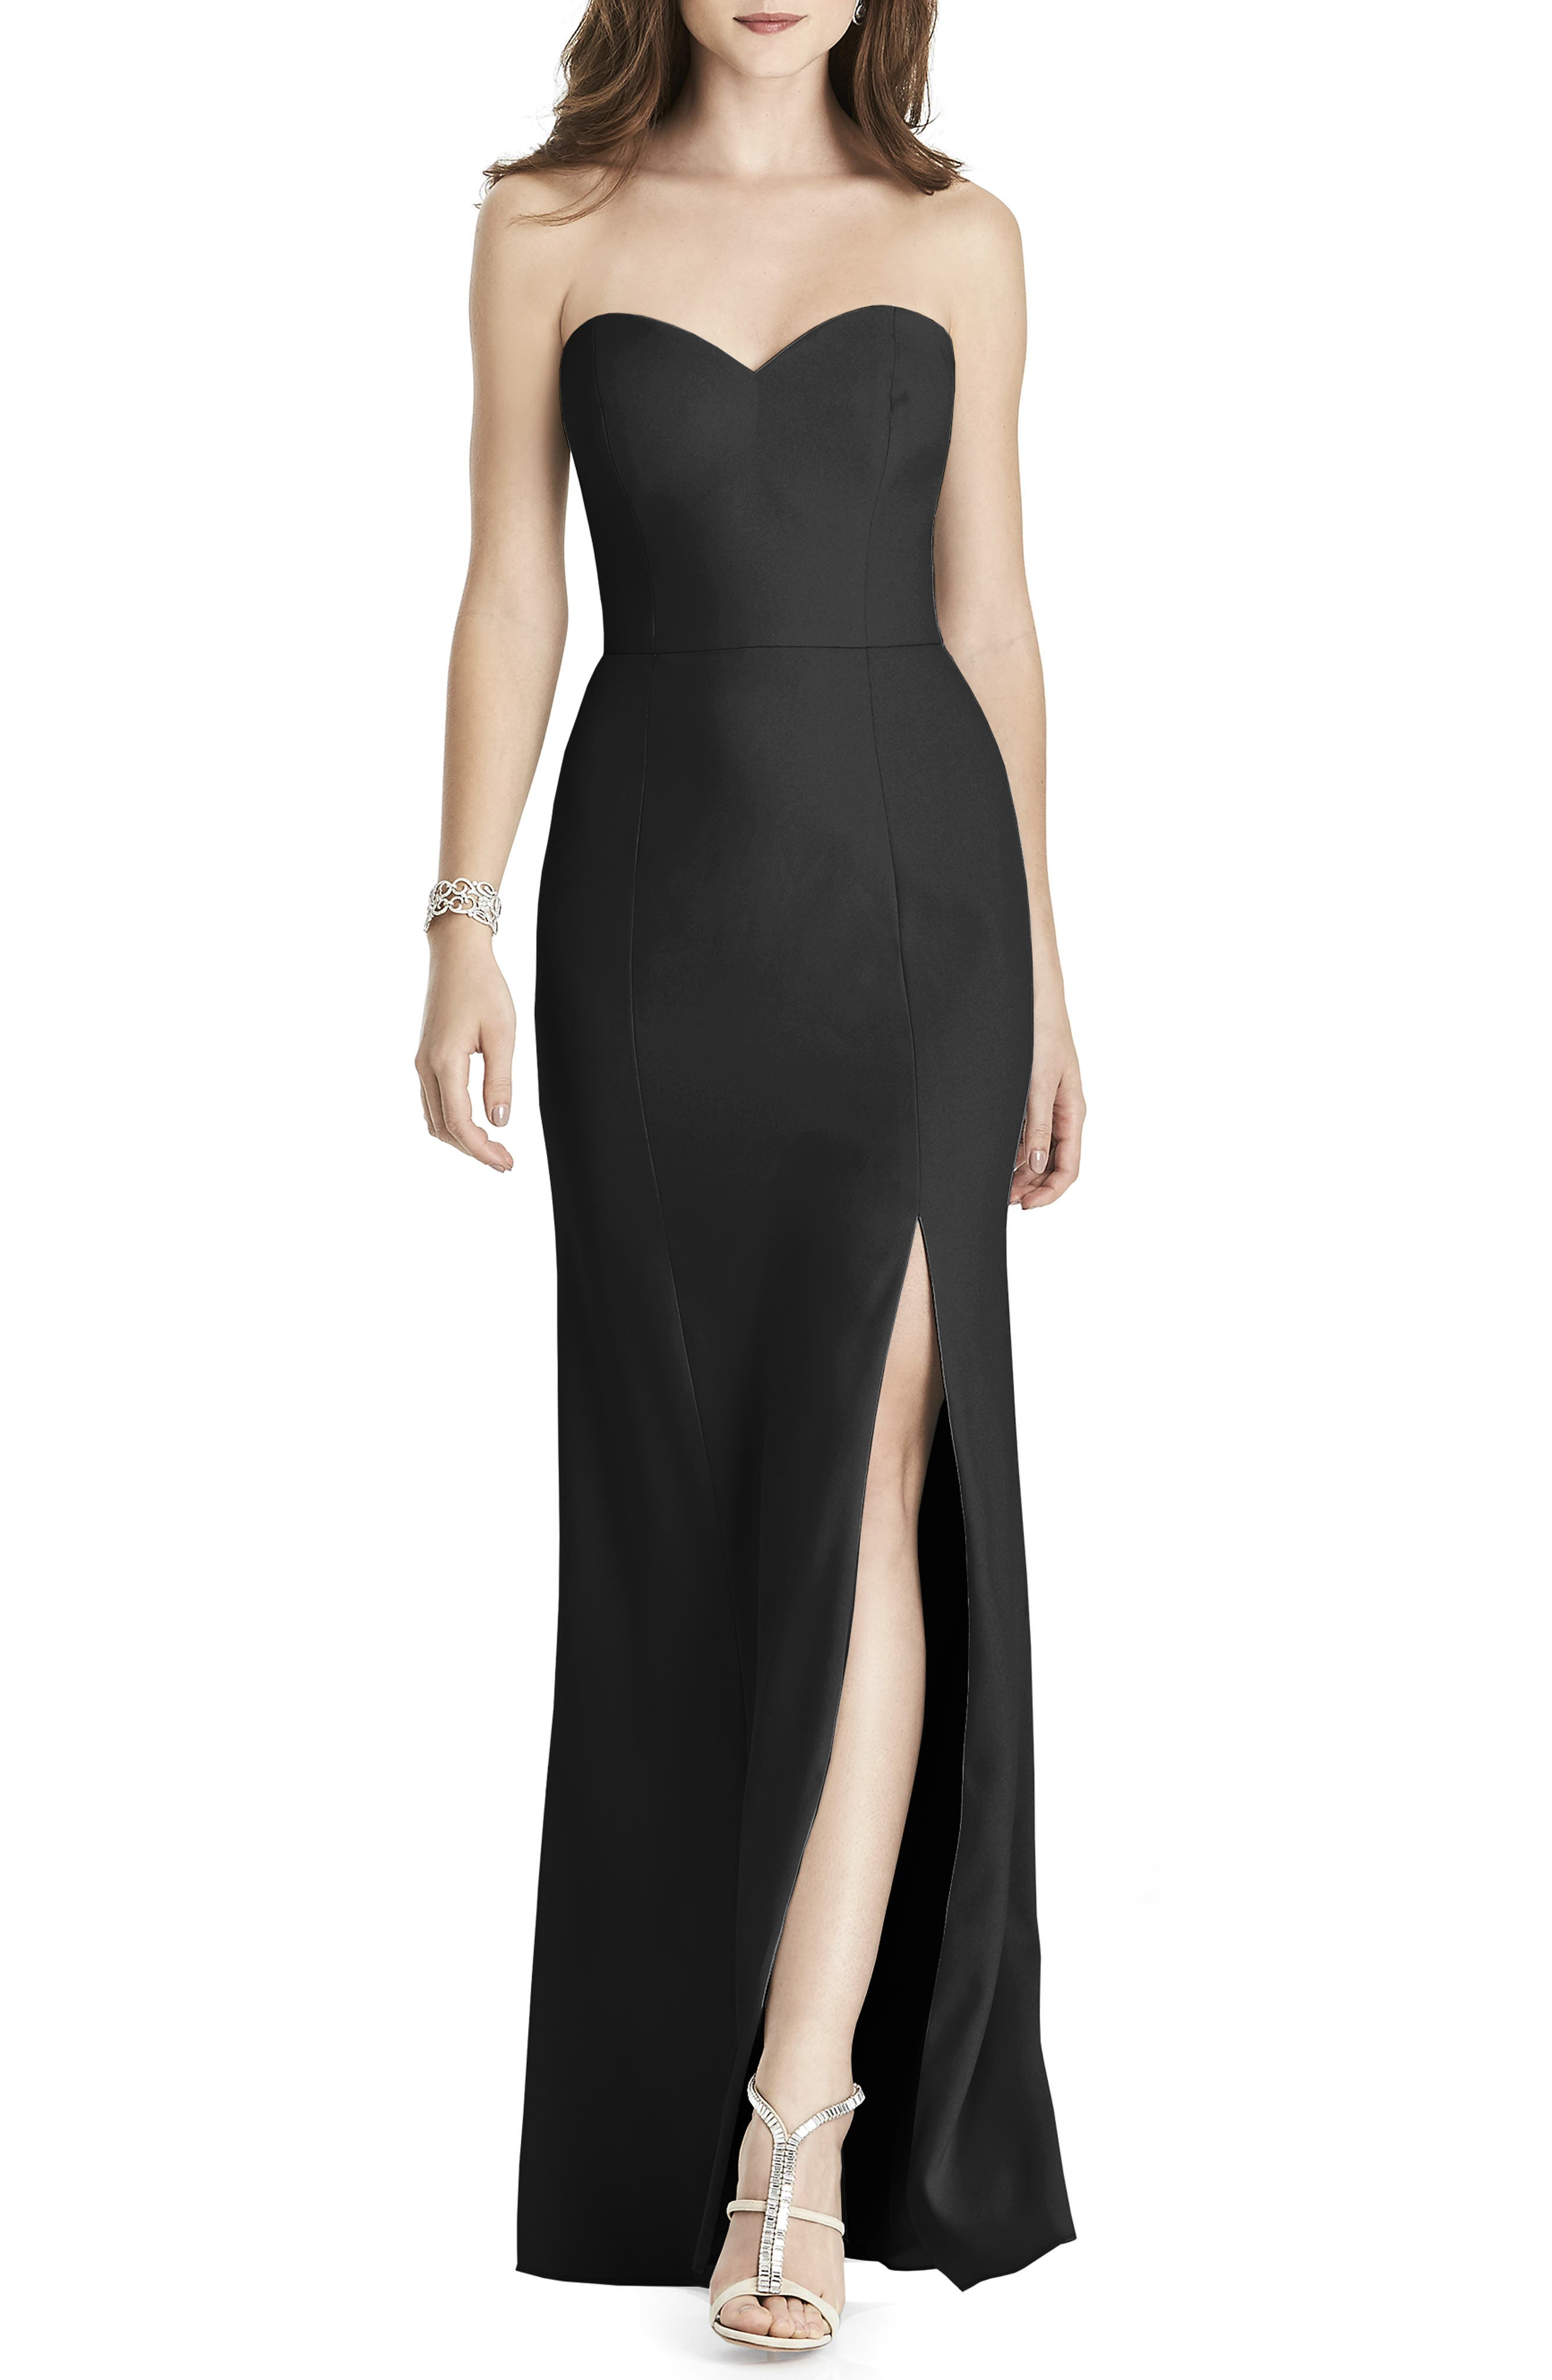 After Six Strapless Crepe Trumpet Gown, 8 (similar to 1) - Black